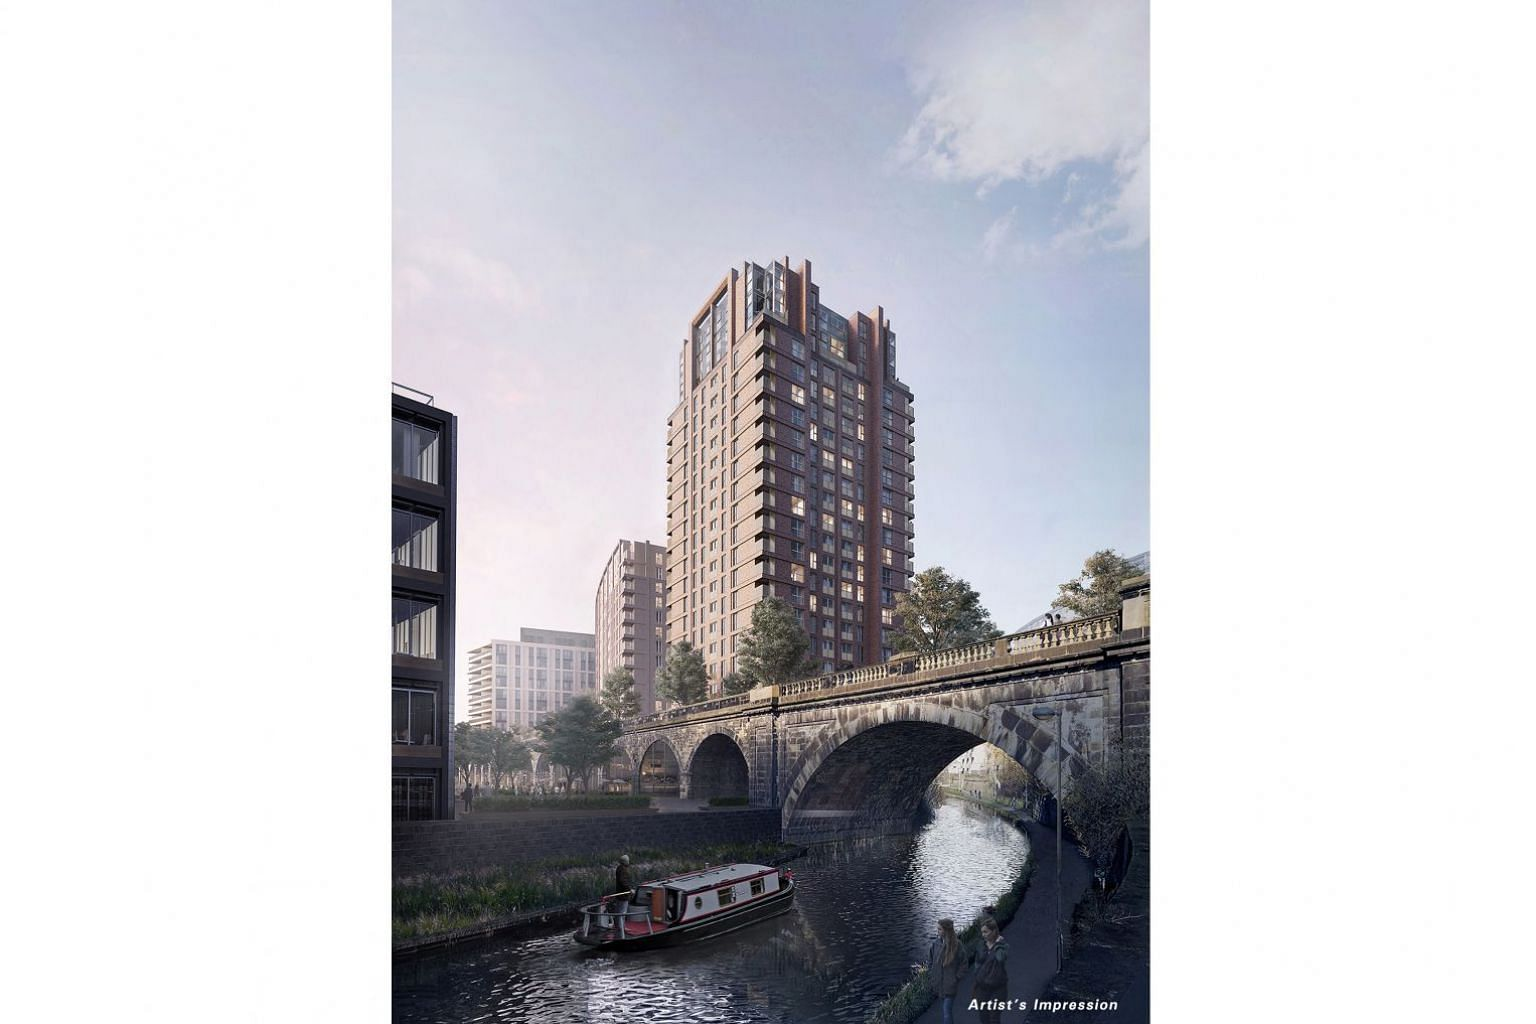 An artist's impression of CDL's Monk Bridge development in Leeds, which is expected to be completed in 2023.